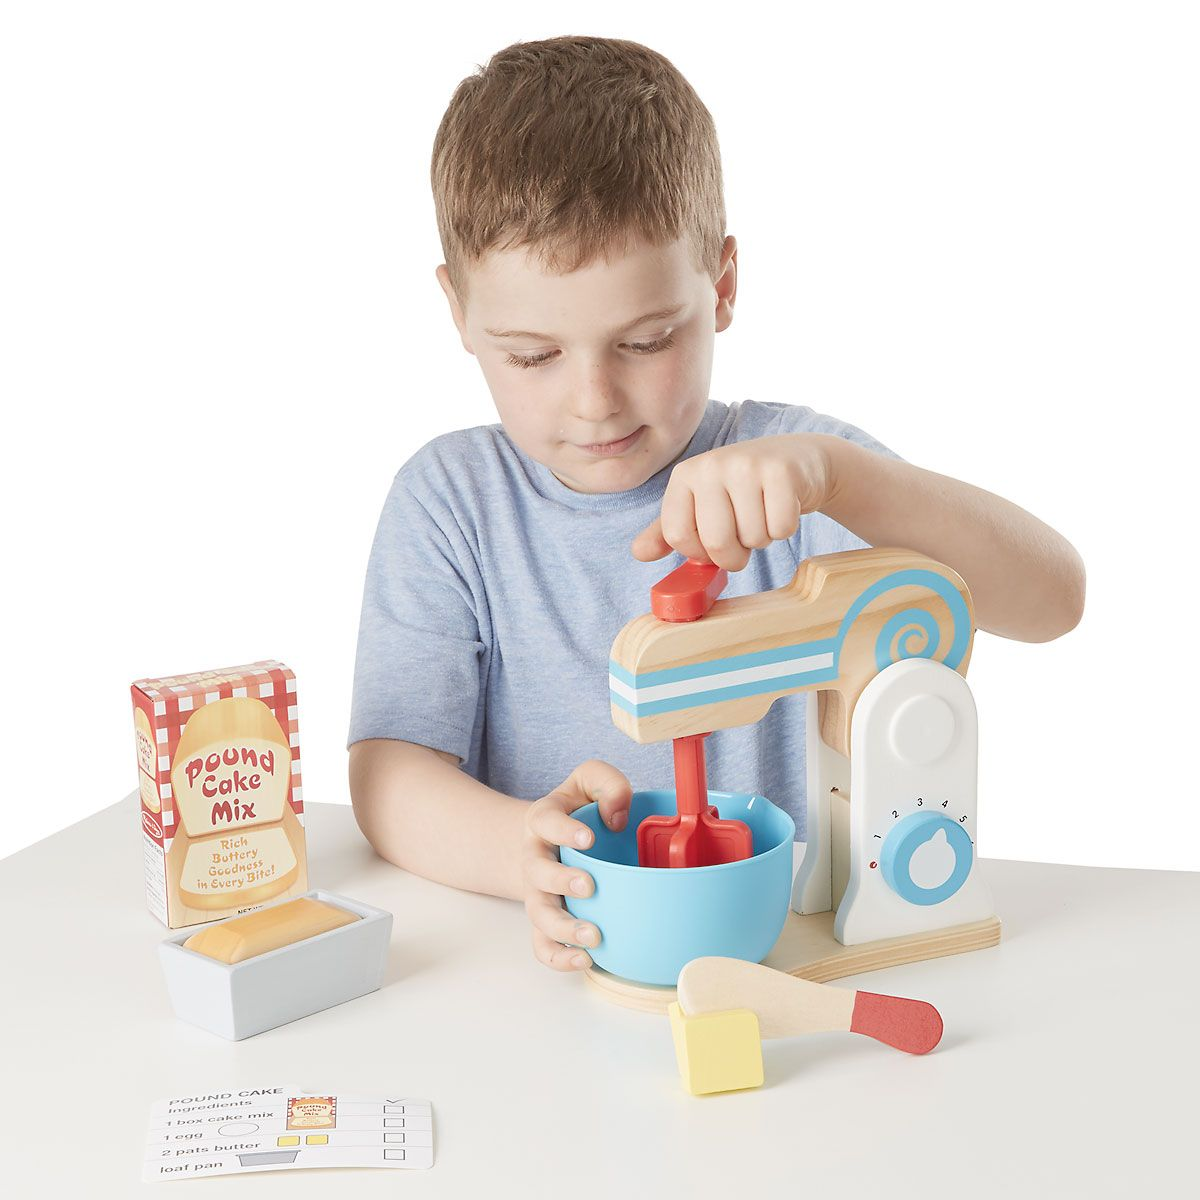 Make-A-Cake Mixer Set by Melissa & Doug®